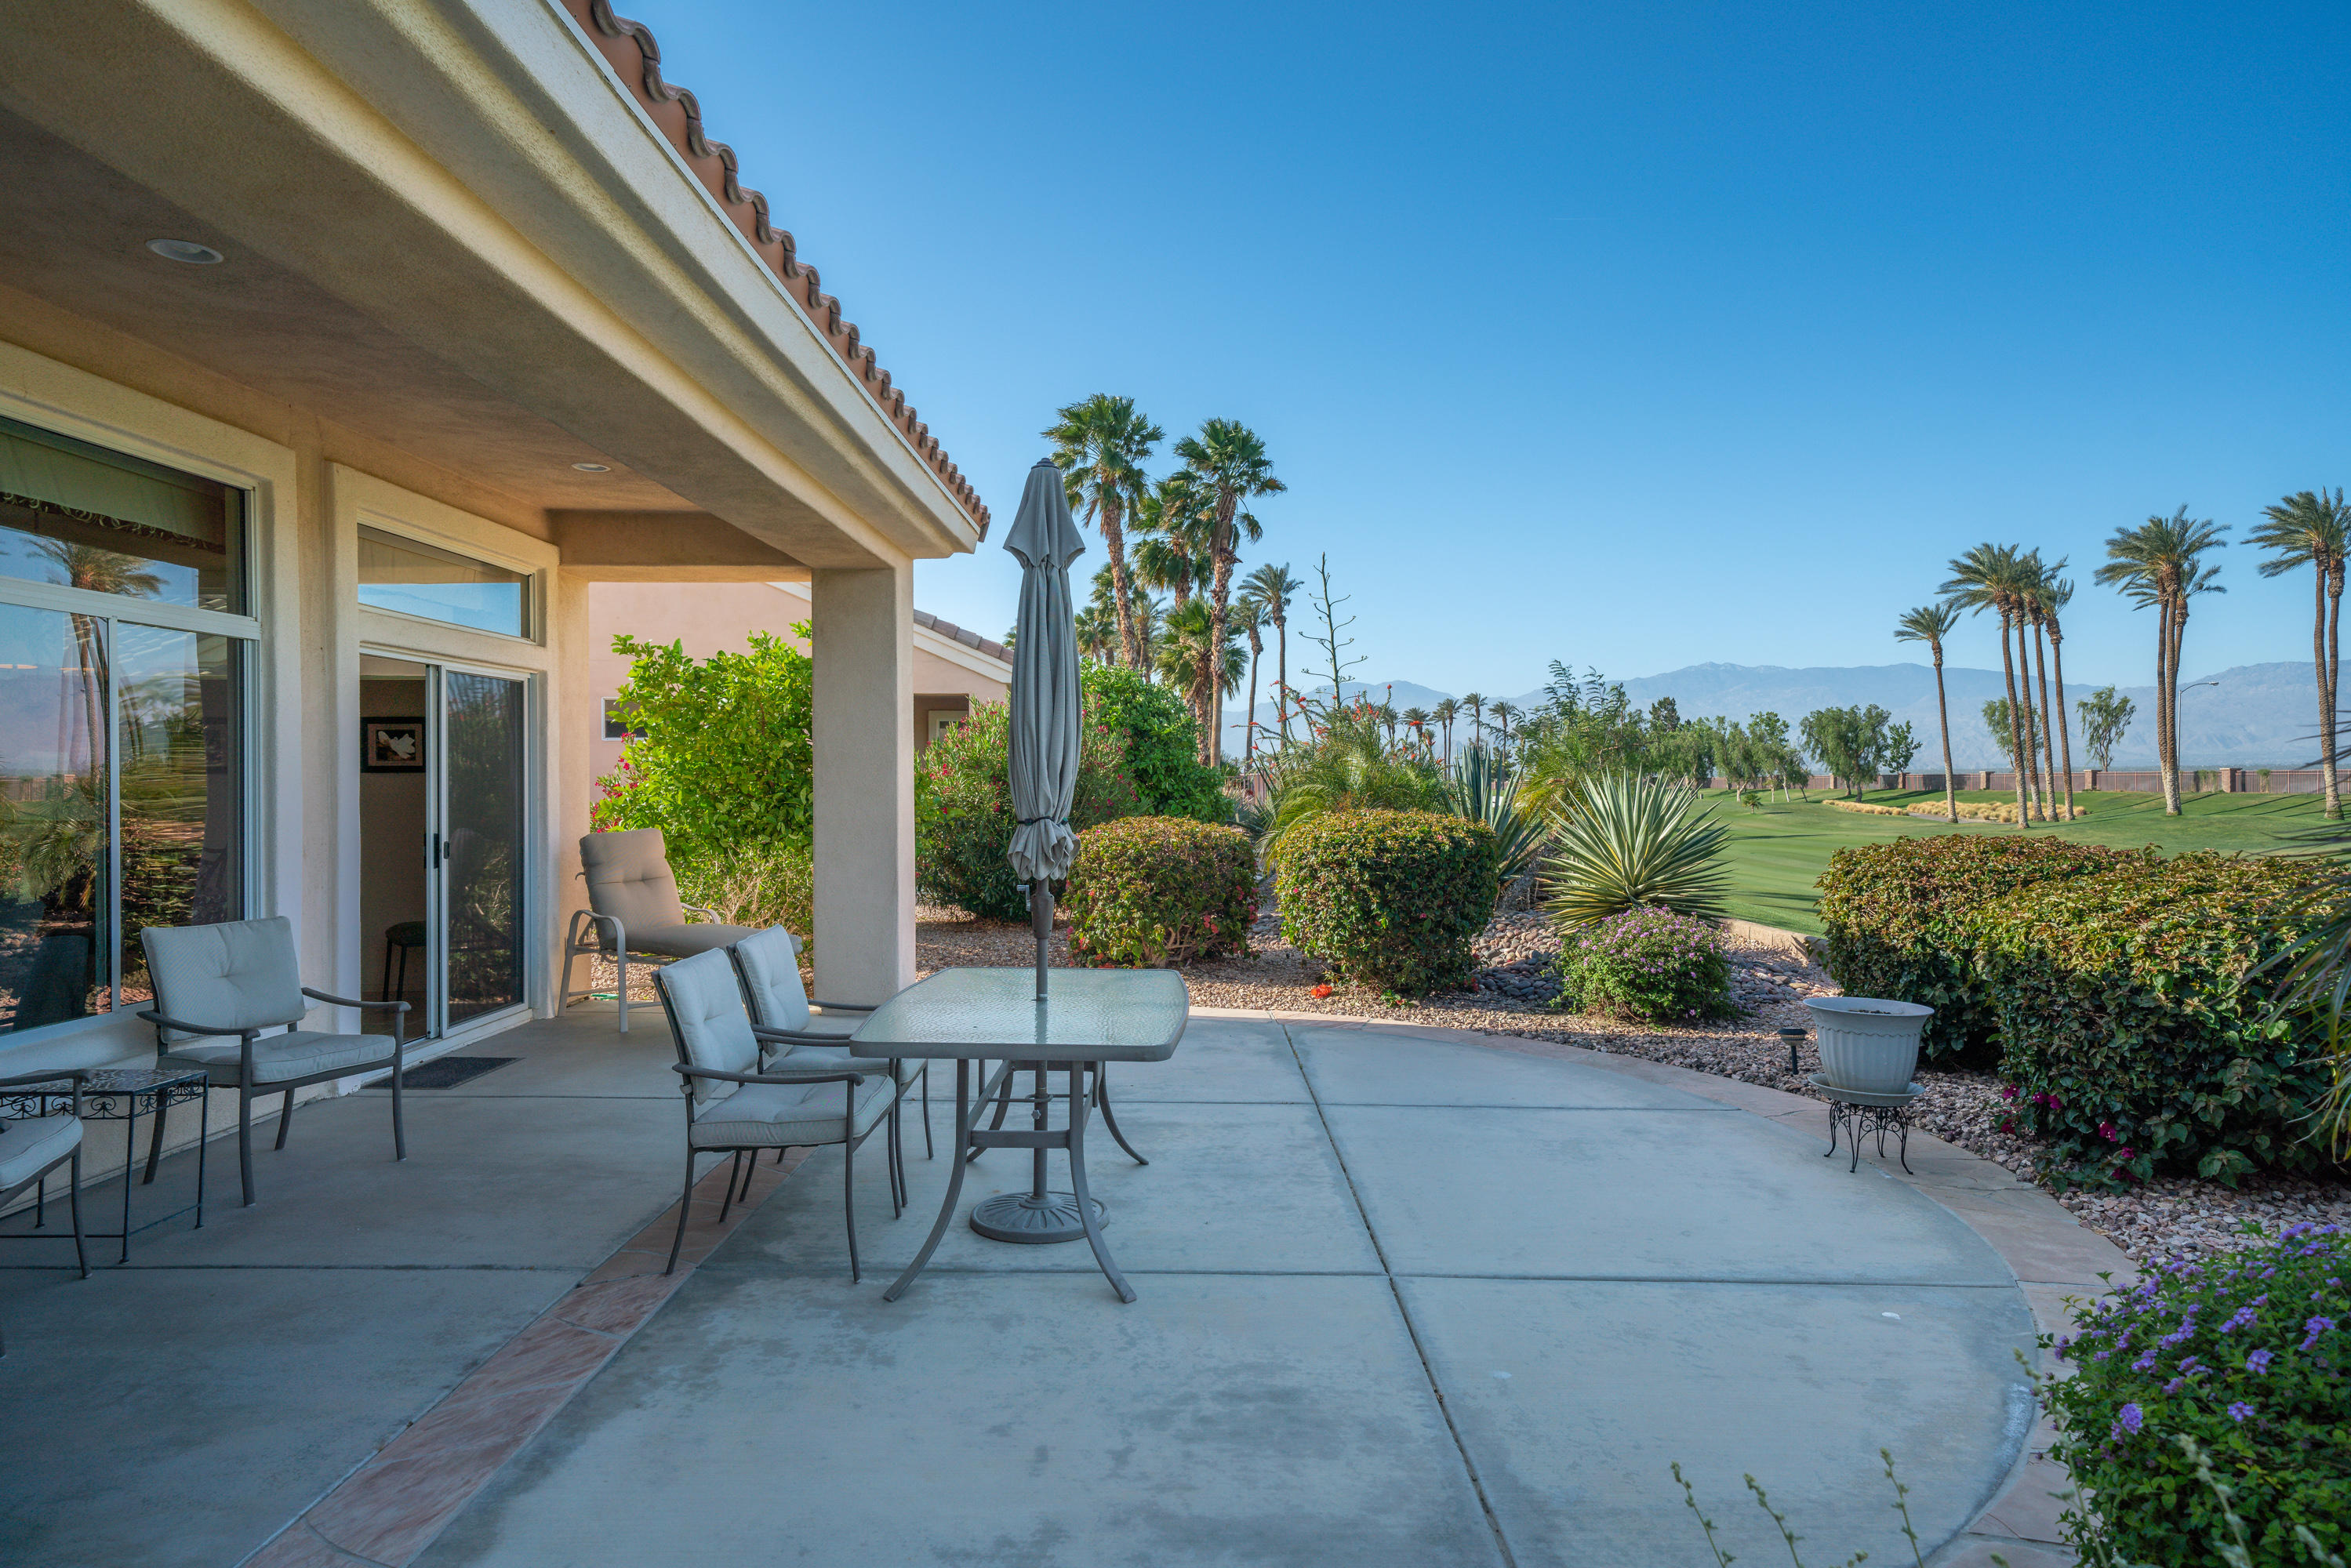 35127 Rosemont Drive, Palm Desert, California 92211, 3 Bedrooms Bedrooms, ,4 BathroomsBathrooms,Residential,For Sale,35127 Rosemont Drive,219041692